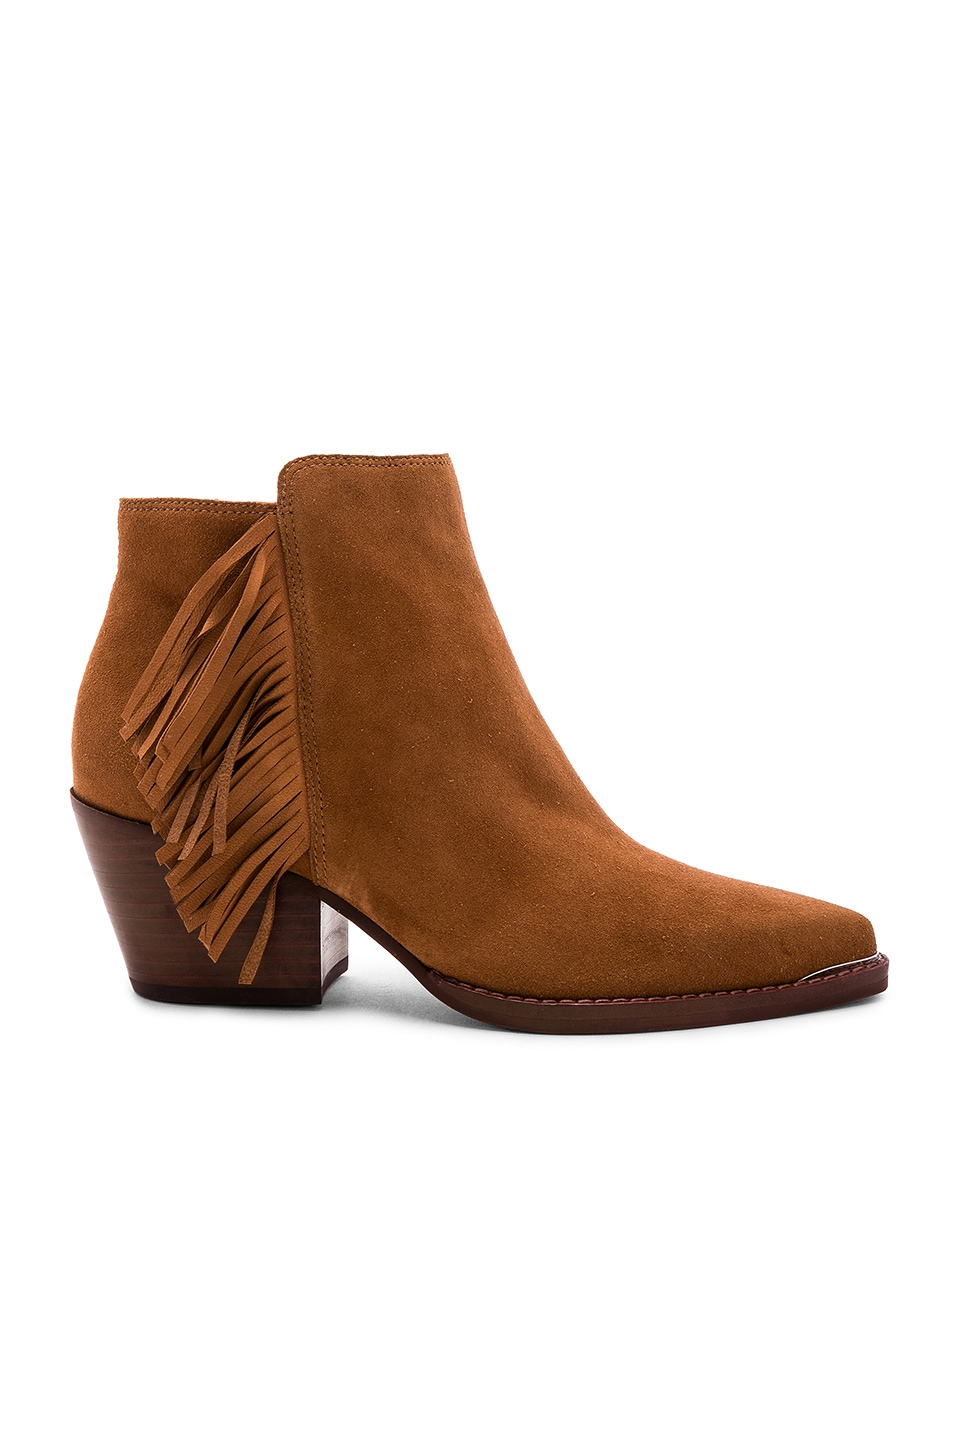 Dolce Vita Sema Bootie in Brown